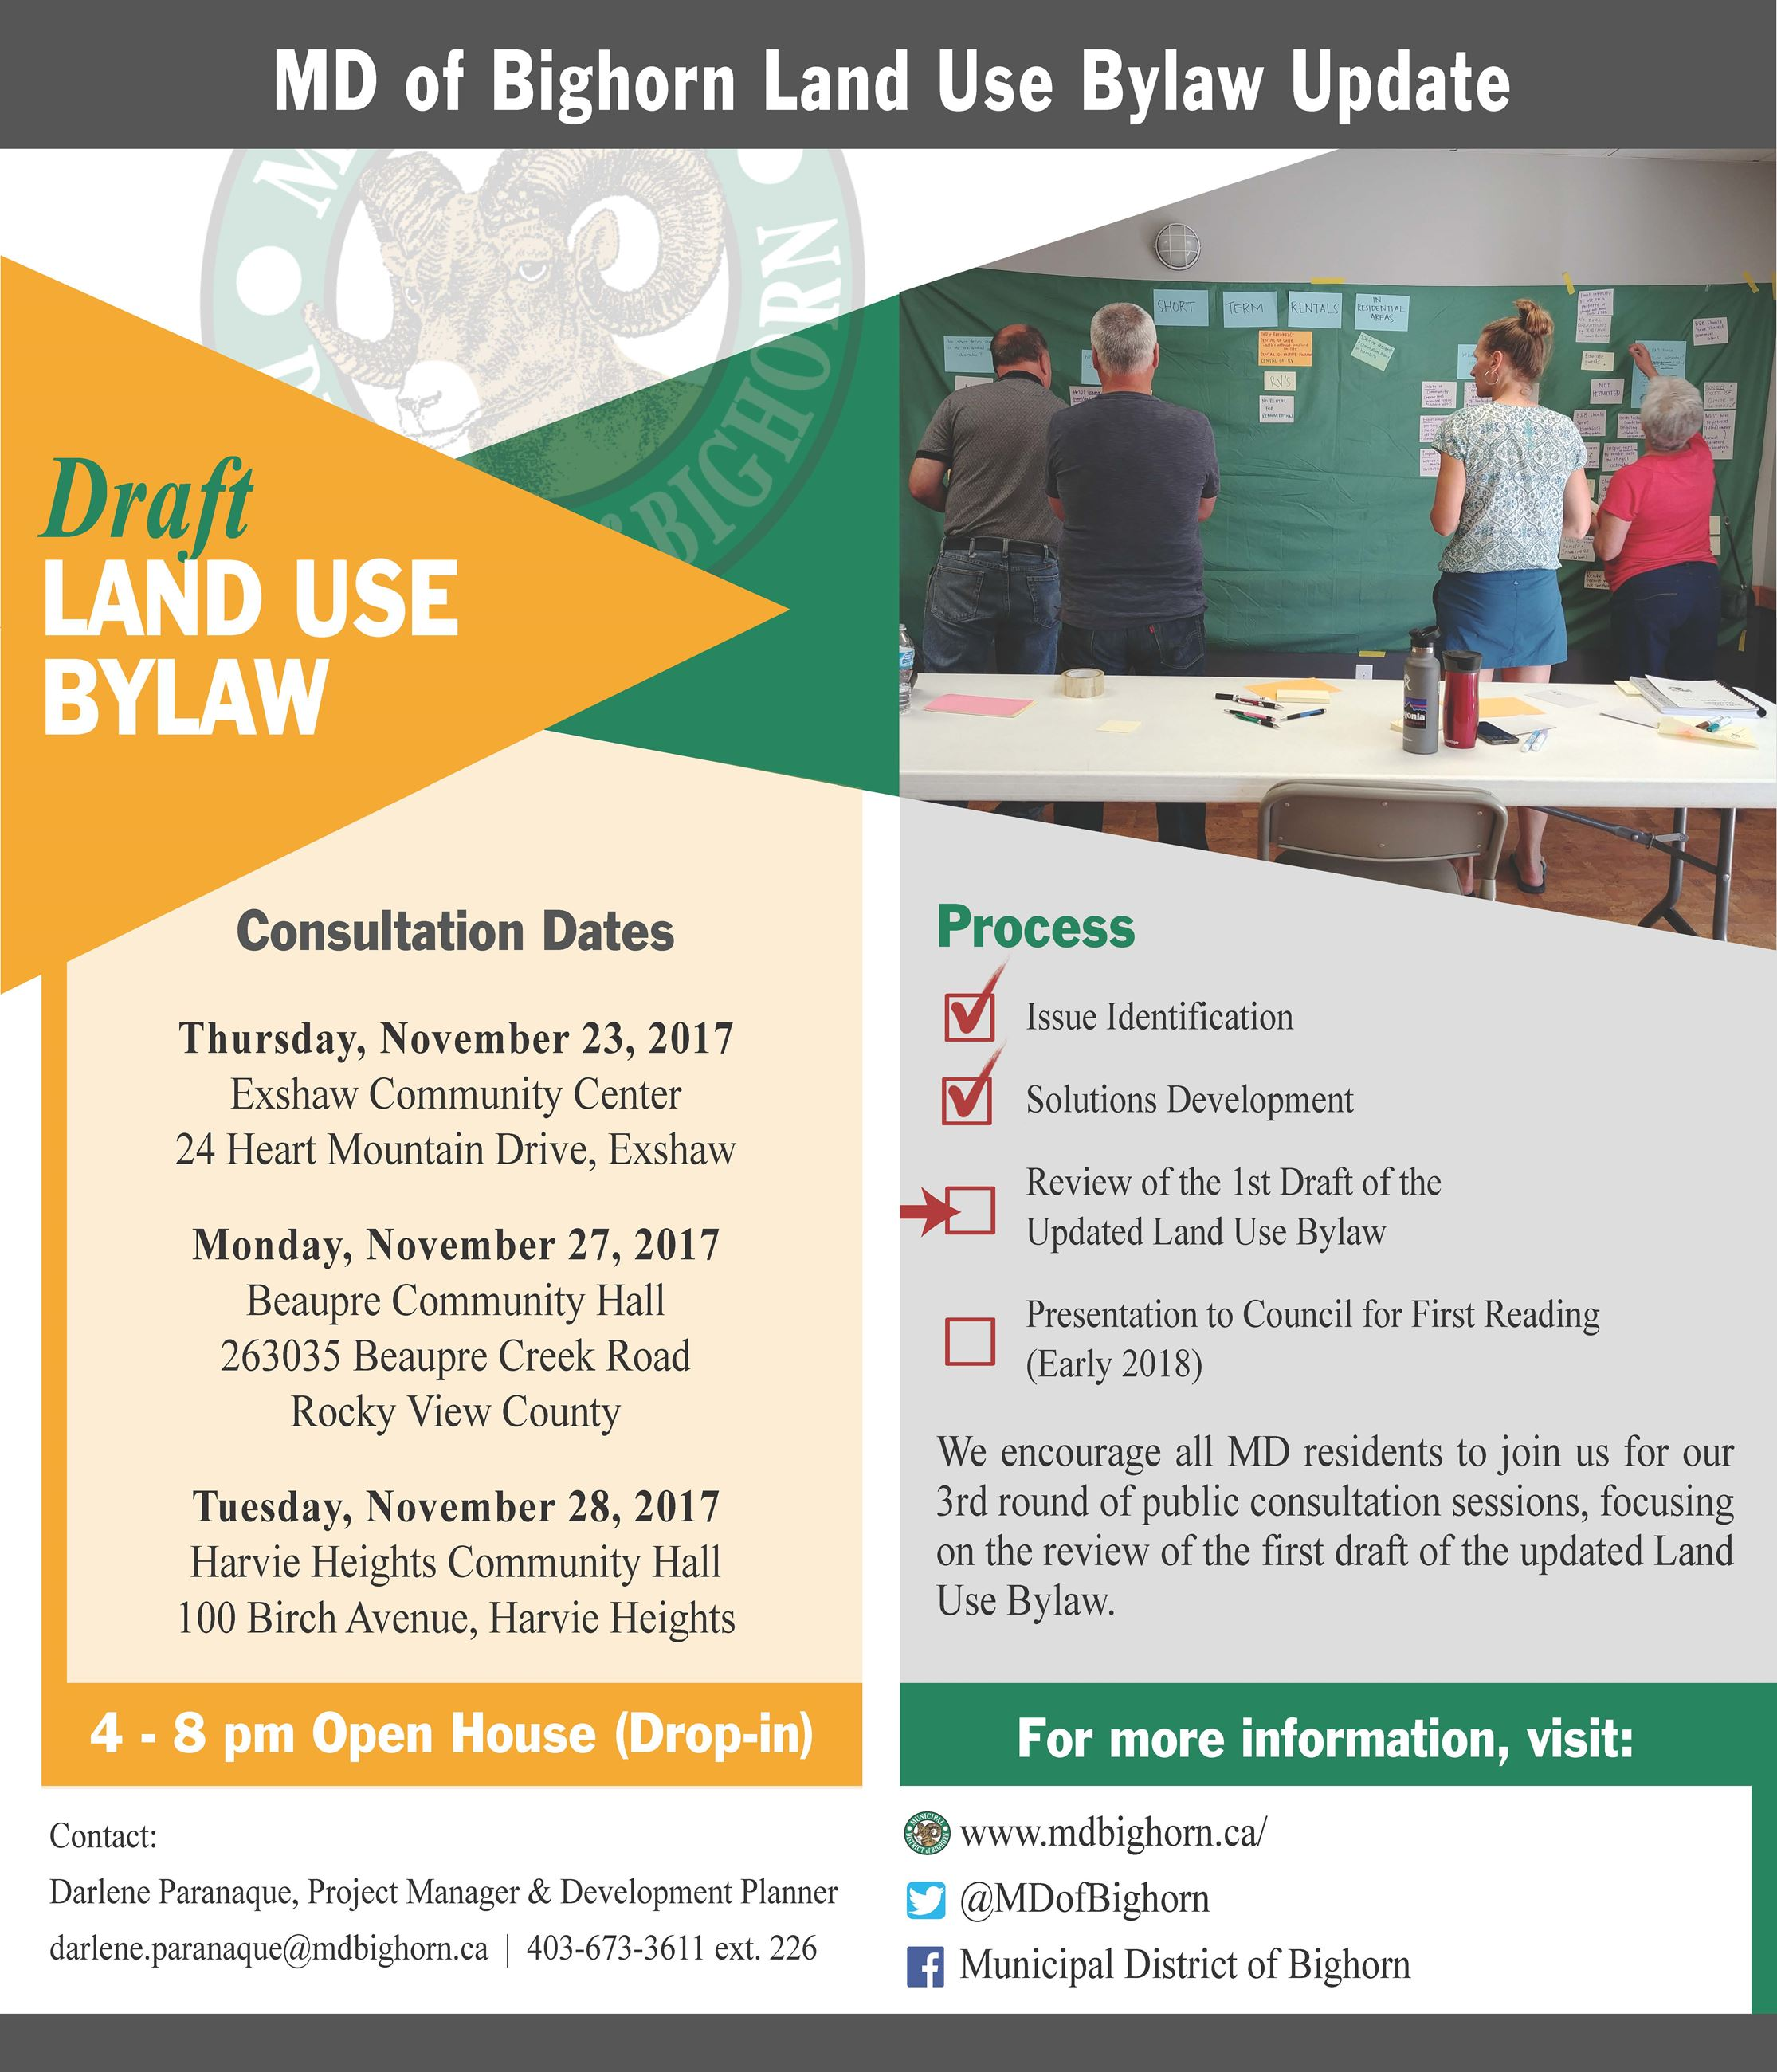 Land Use Bylaw - 1st Draft Consultation Open Houses